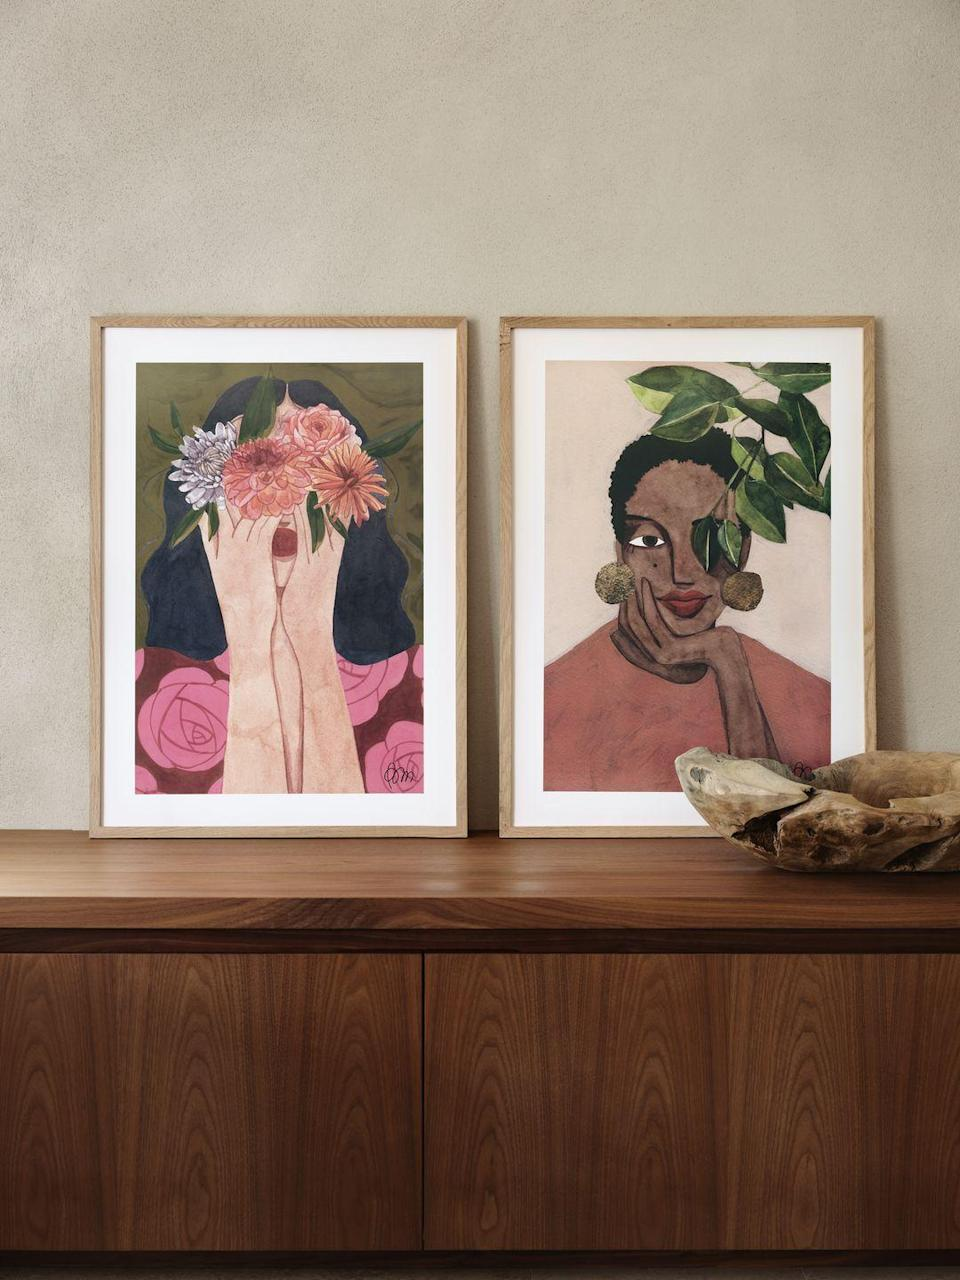 """<p>Looking to brighten up an empty wall space? Designed by Brunna Mancuso at her art studio in São Paolo, Brazil, each poster in the collection has been made using various techniques, including watercolour, gouache, and acrylics.</p><p>Speaking about the inspiration behind drawing women, Brunna says: 'We are so powerful and delicate at the same time. I like to explore that in my work through the expressive brush strokes, the textures, the shapes, and colours. I'd love it if every woman on the planet felt as confident as the women I paint.'</p><p><a class=""""link rapid-noclick-resp"""" href=""""https://www2.hm.com/en_gb/productpage.1009580006.html"""" rel=""""nofollow noopener"""" target=""""_blank"""" data-ylk=""""slk:BUY NOW"""">BUY NOW</a></p>"""